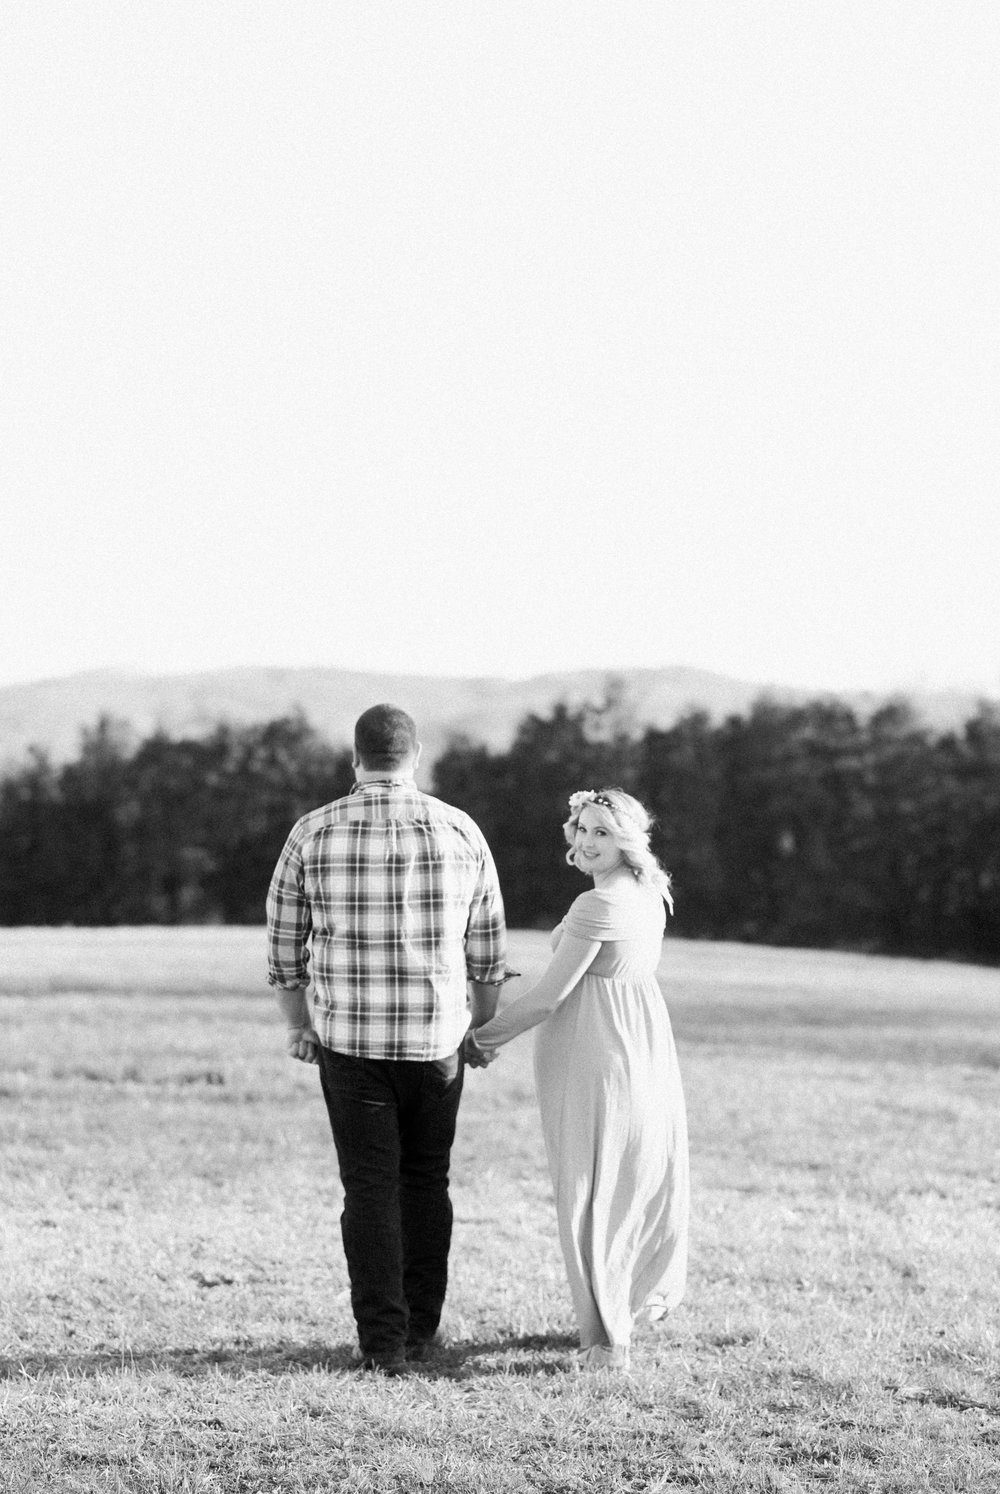 SorellaFarms_Jessica+Dylan_MaternitySession_Virginiaweddingphotographer 24.jpg